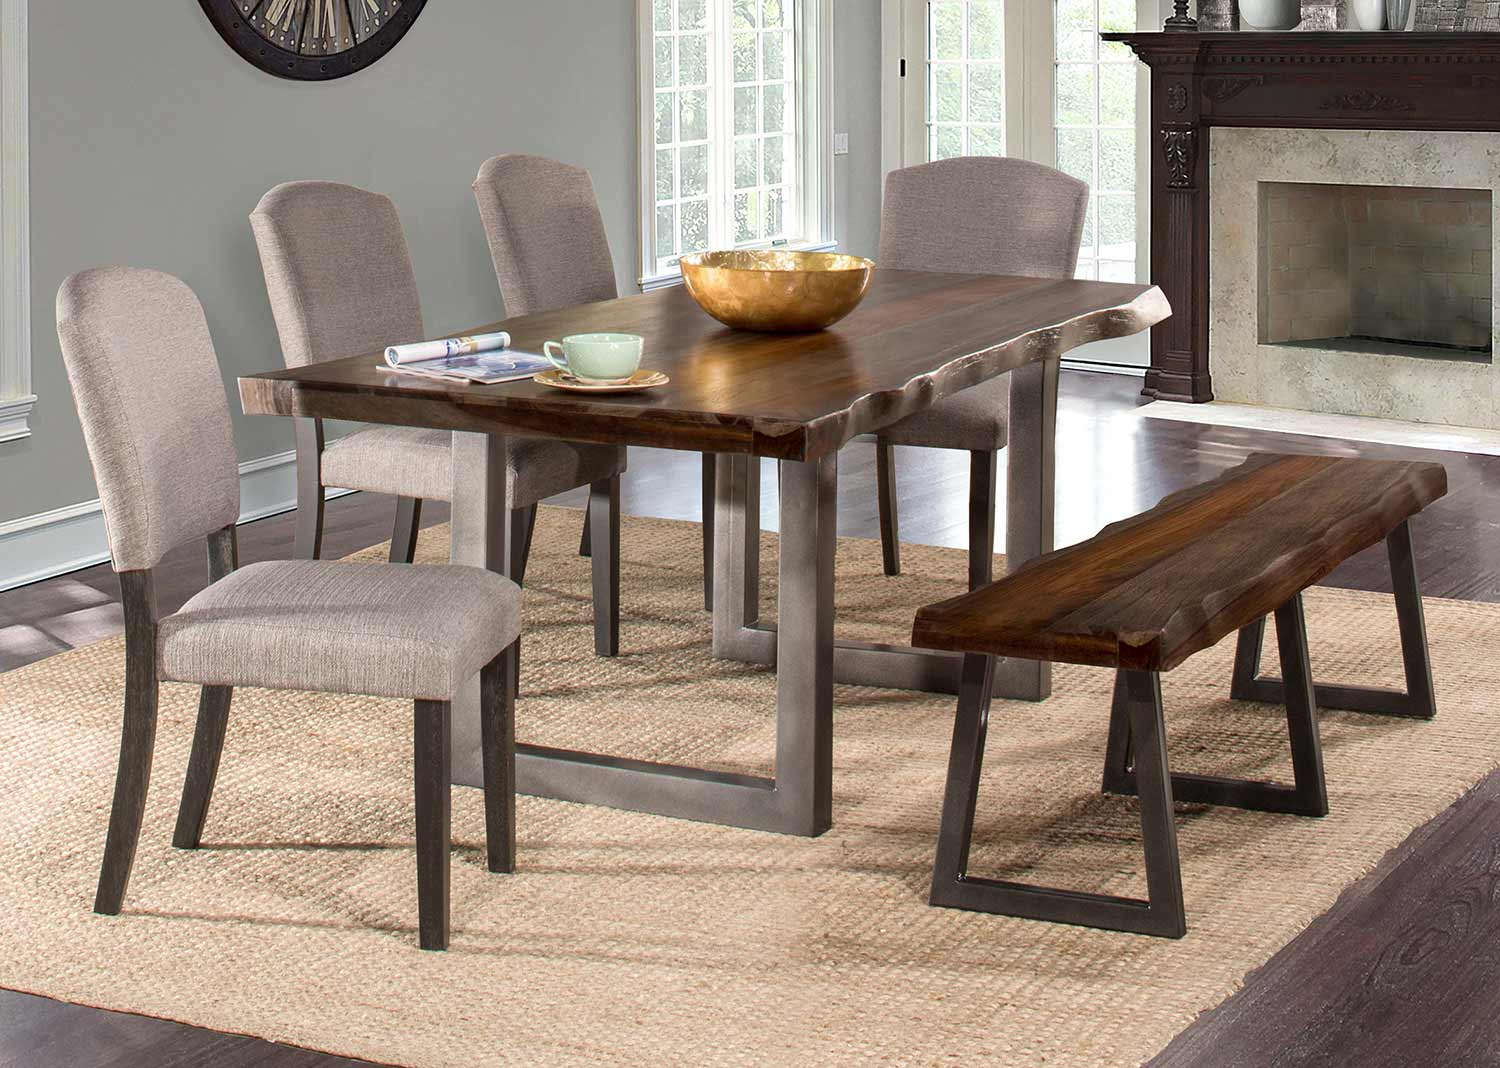 Hillsdale Emerson 6-Piece Rectangle Dining Set with One Bench and Four Chairs - Gray Sheesham